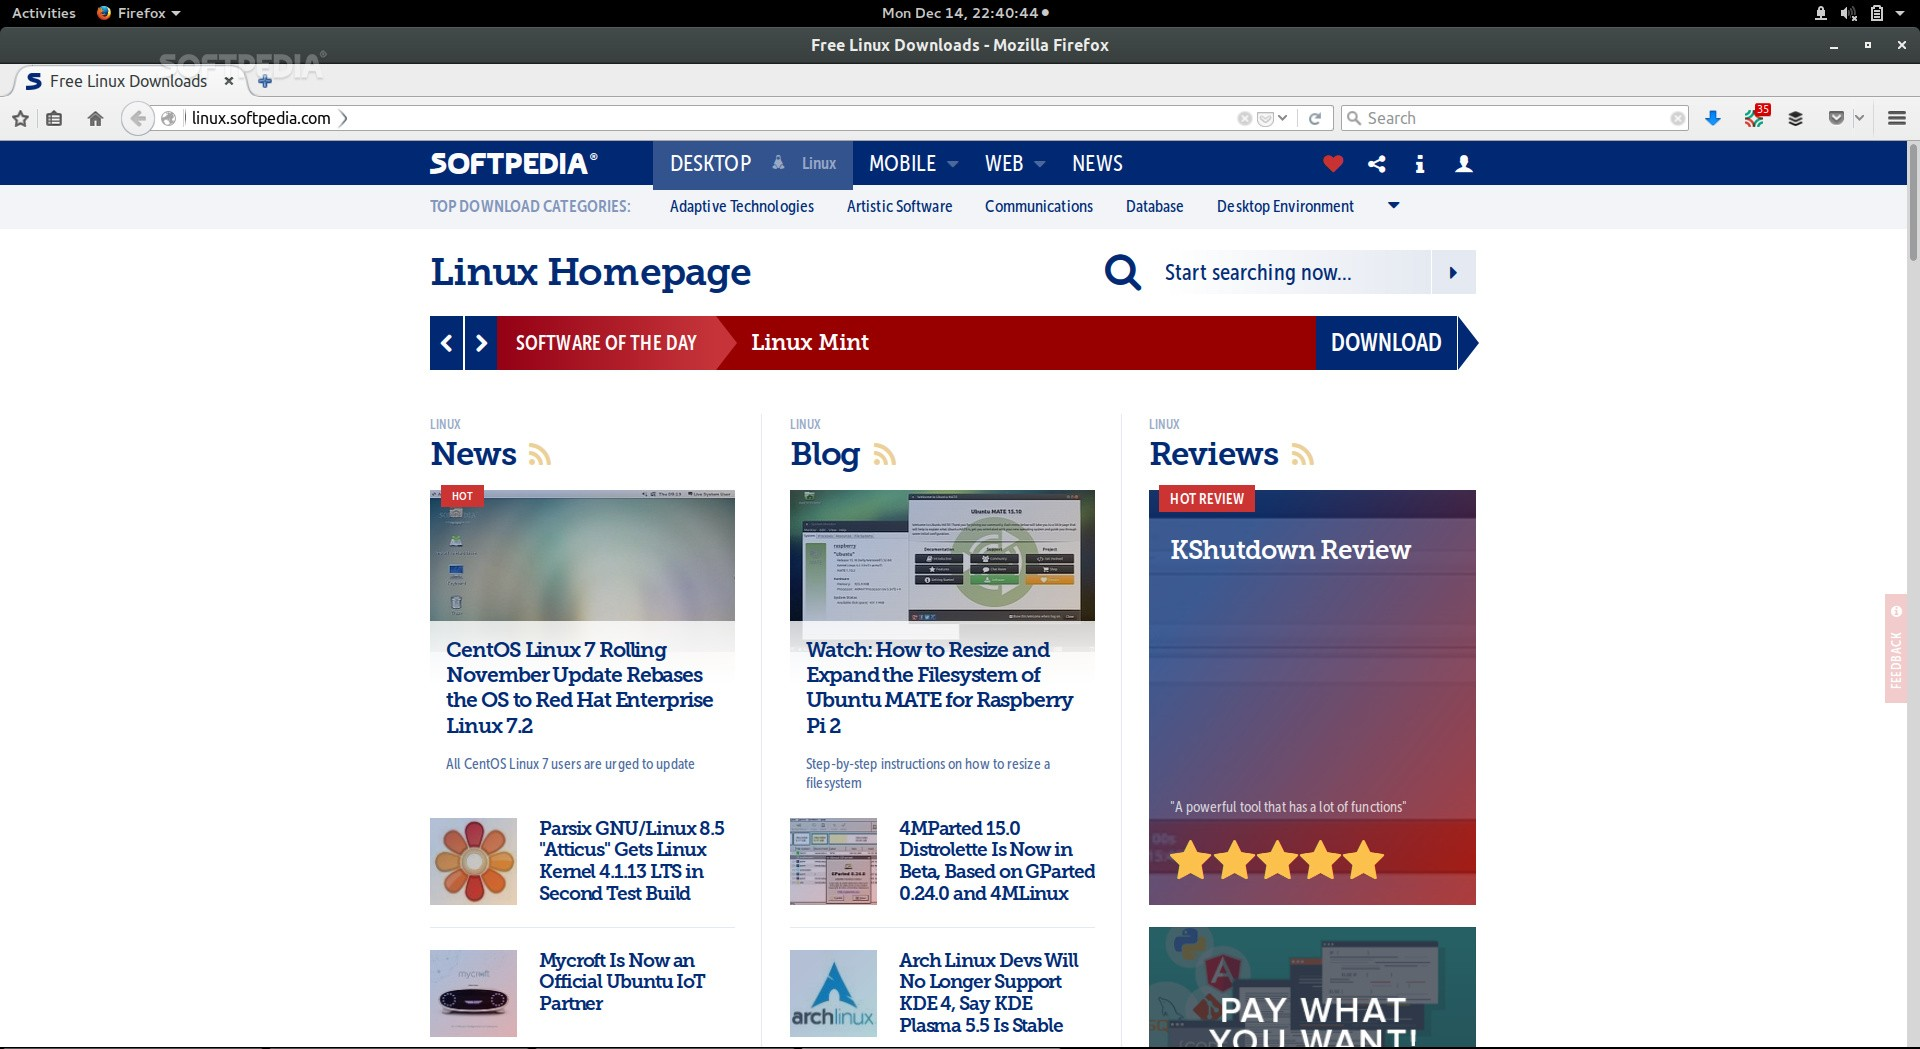 Mozilla Firefox 43 0 Is Now Available for Download for Linux, Mac